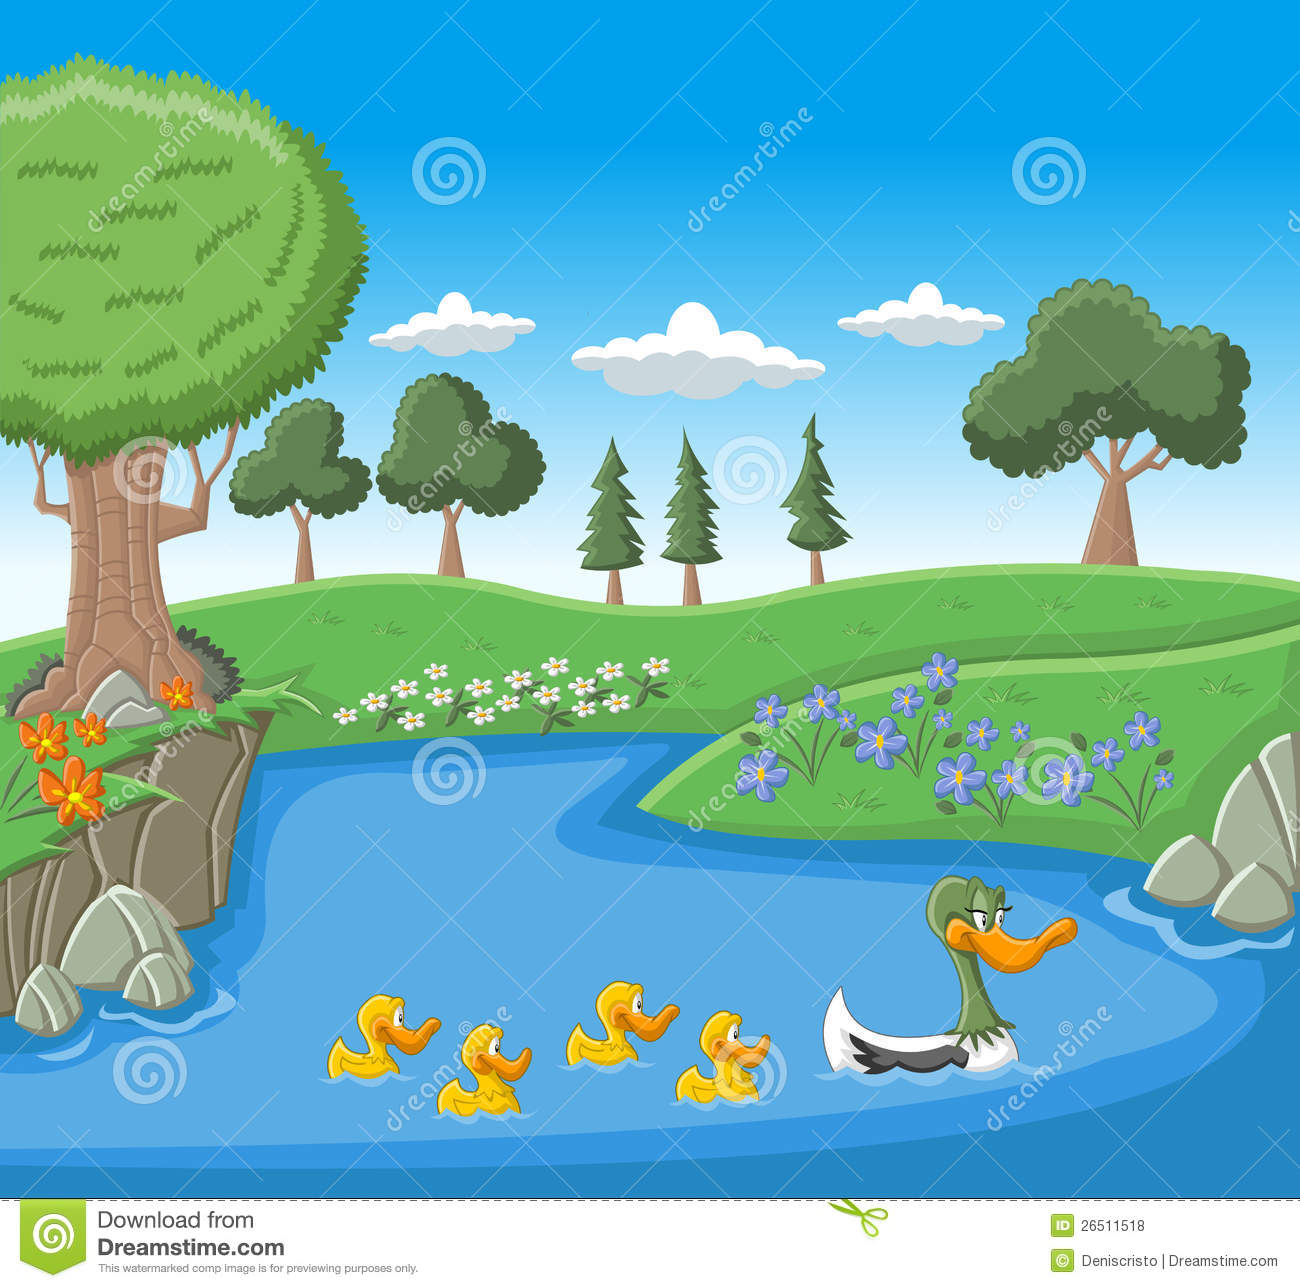 Lake clipart lake river. Images clip art wallpapers